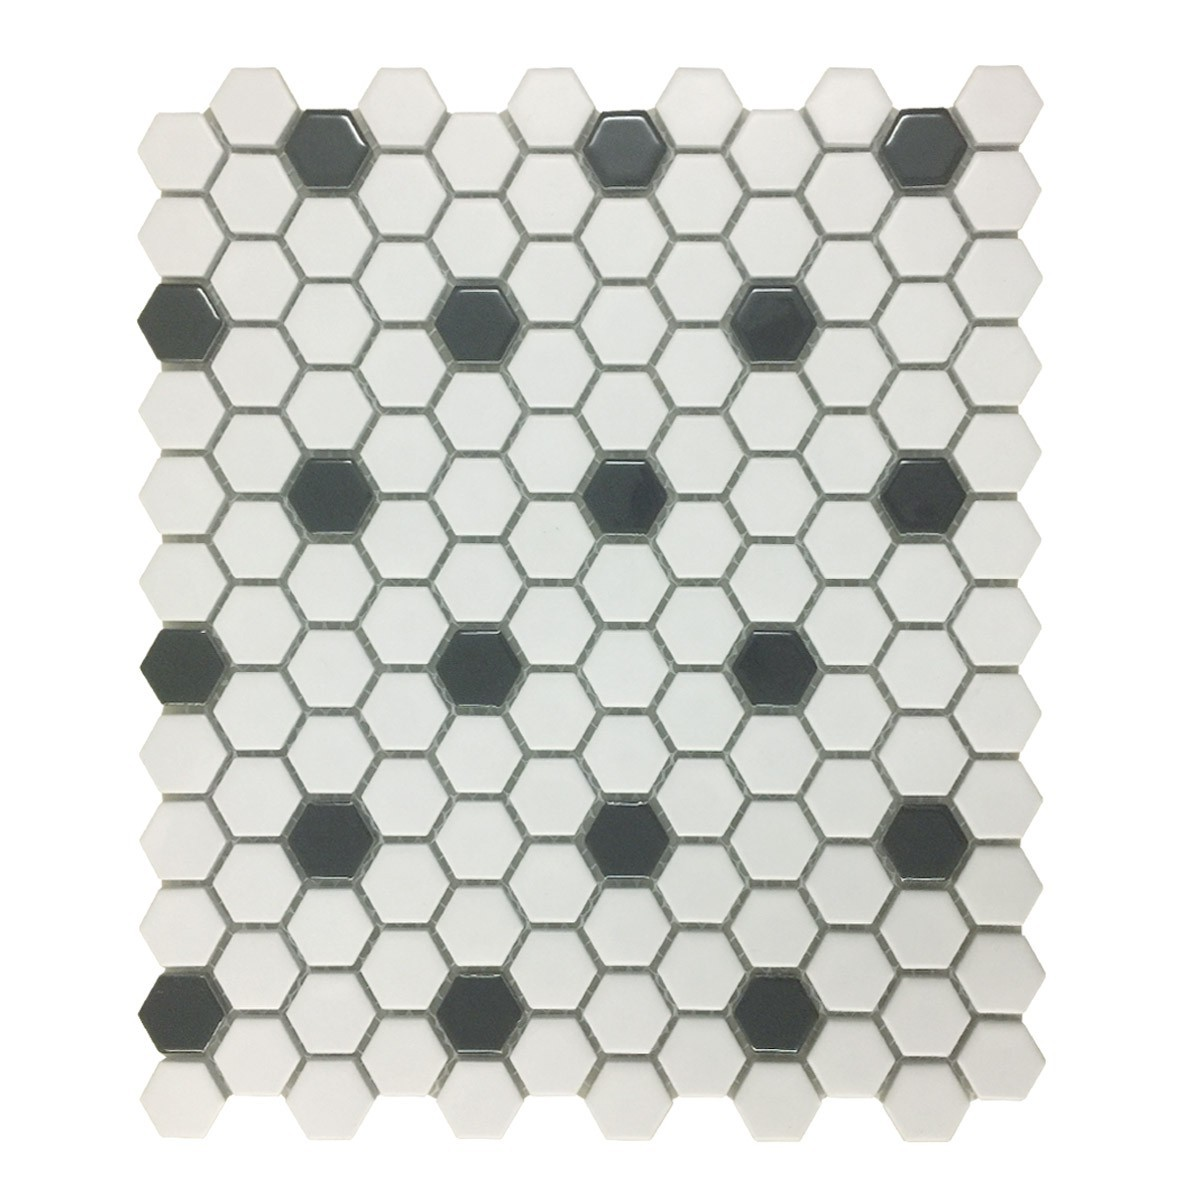 "White and Black Matte Floor Tile Porcelain Mosaic Hexagon 1 Sheet 10.25"" x 11.8"""